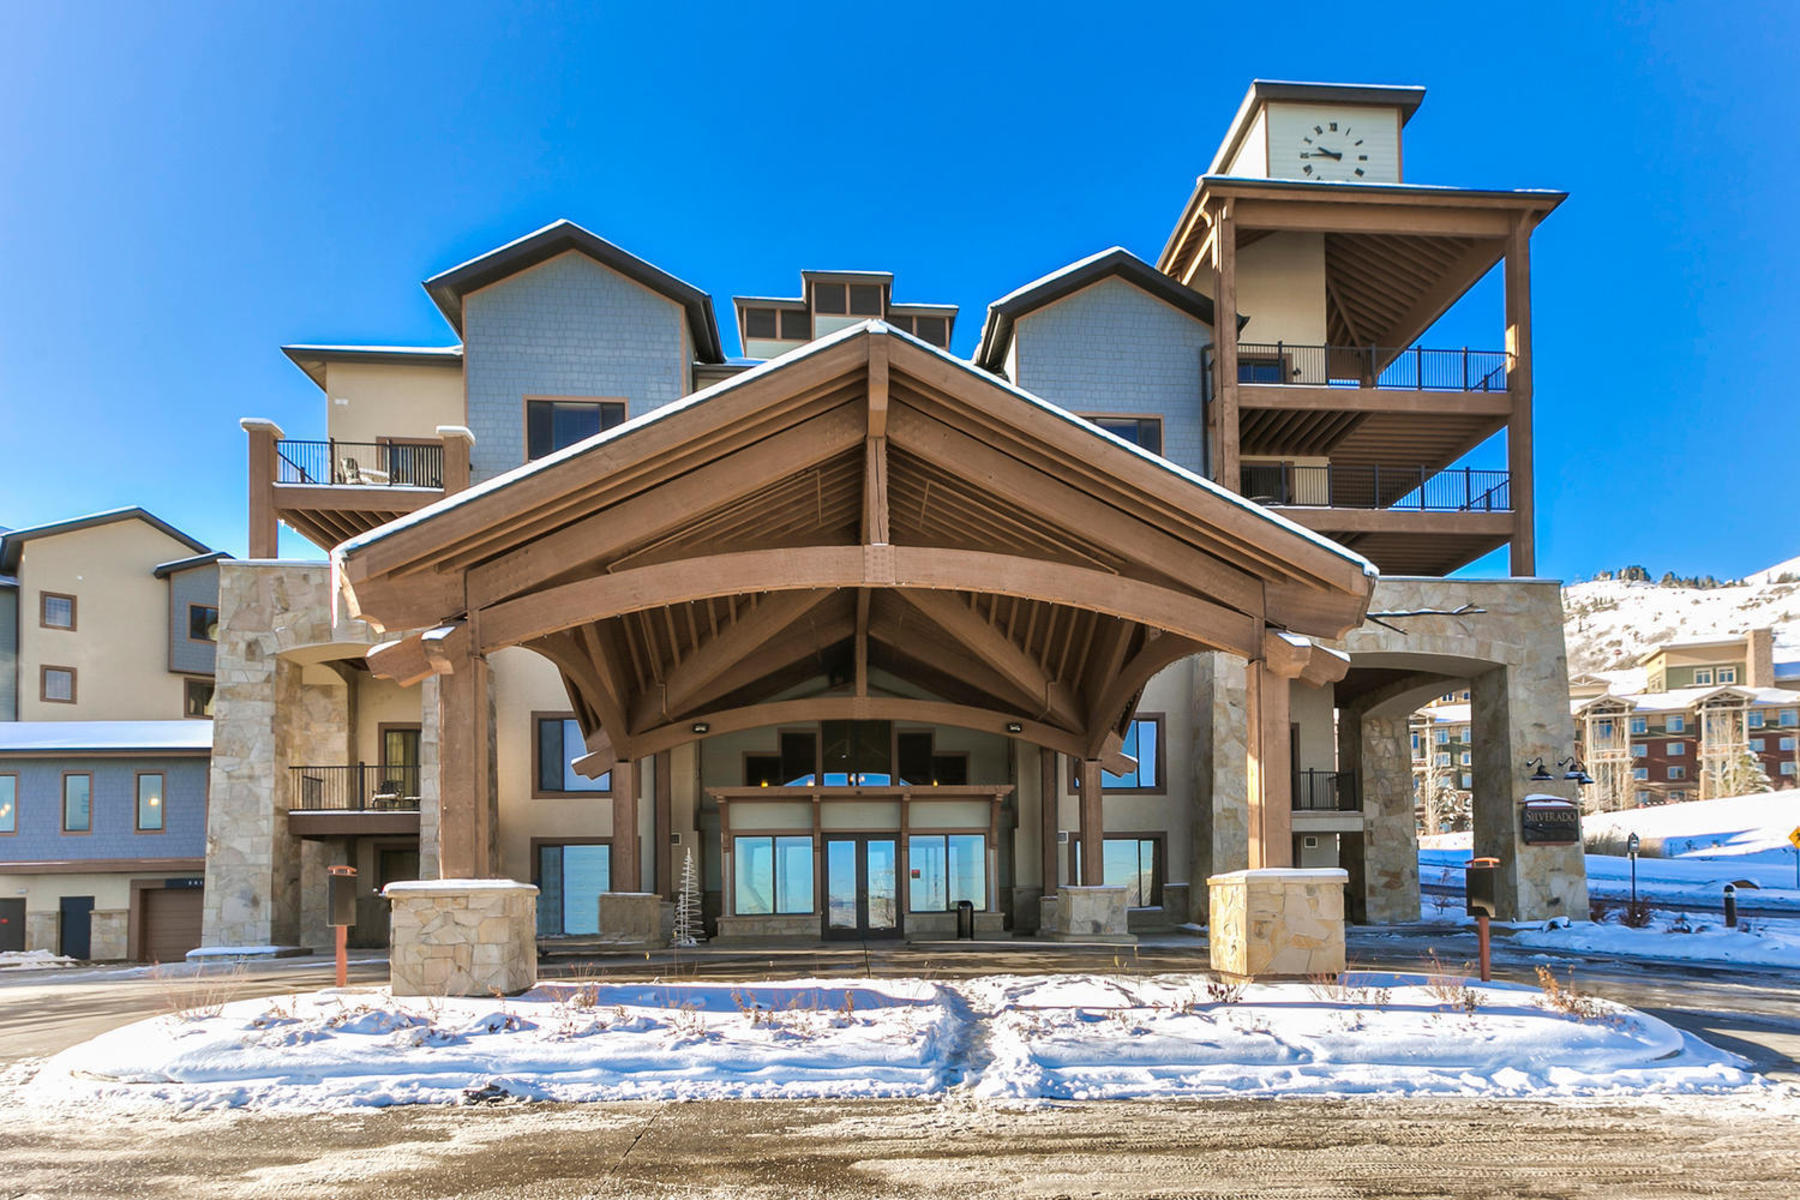 Condominium for Sale at Upscale Setting for the Four-Season Mountain Living 2669 Canyons Resort Dr #105 A,B,C Park City, Utah 84098 United States